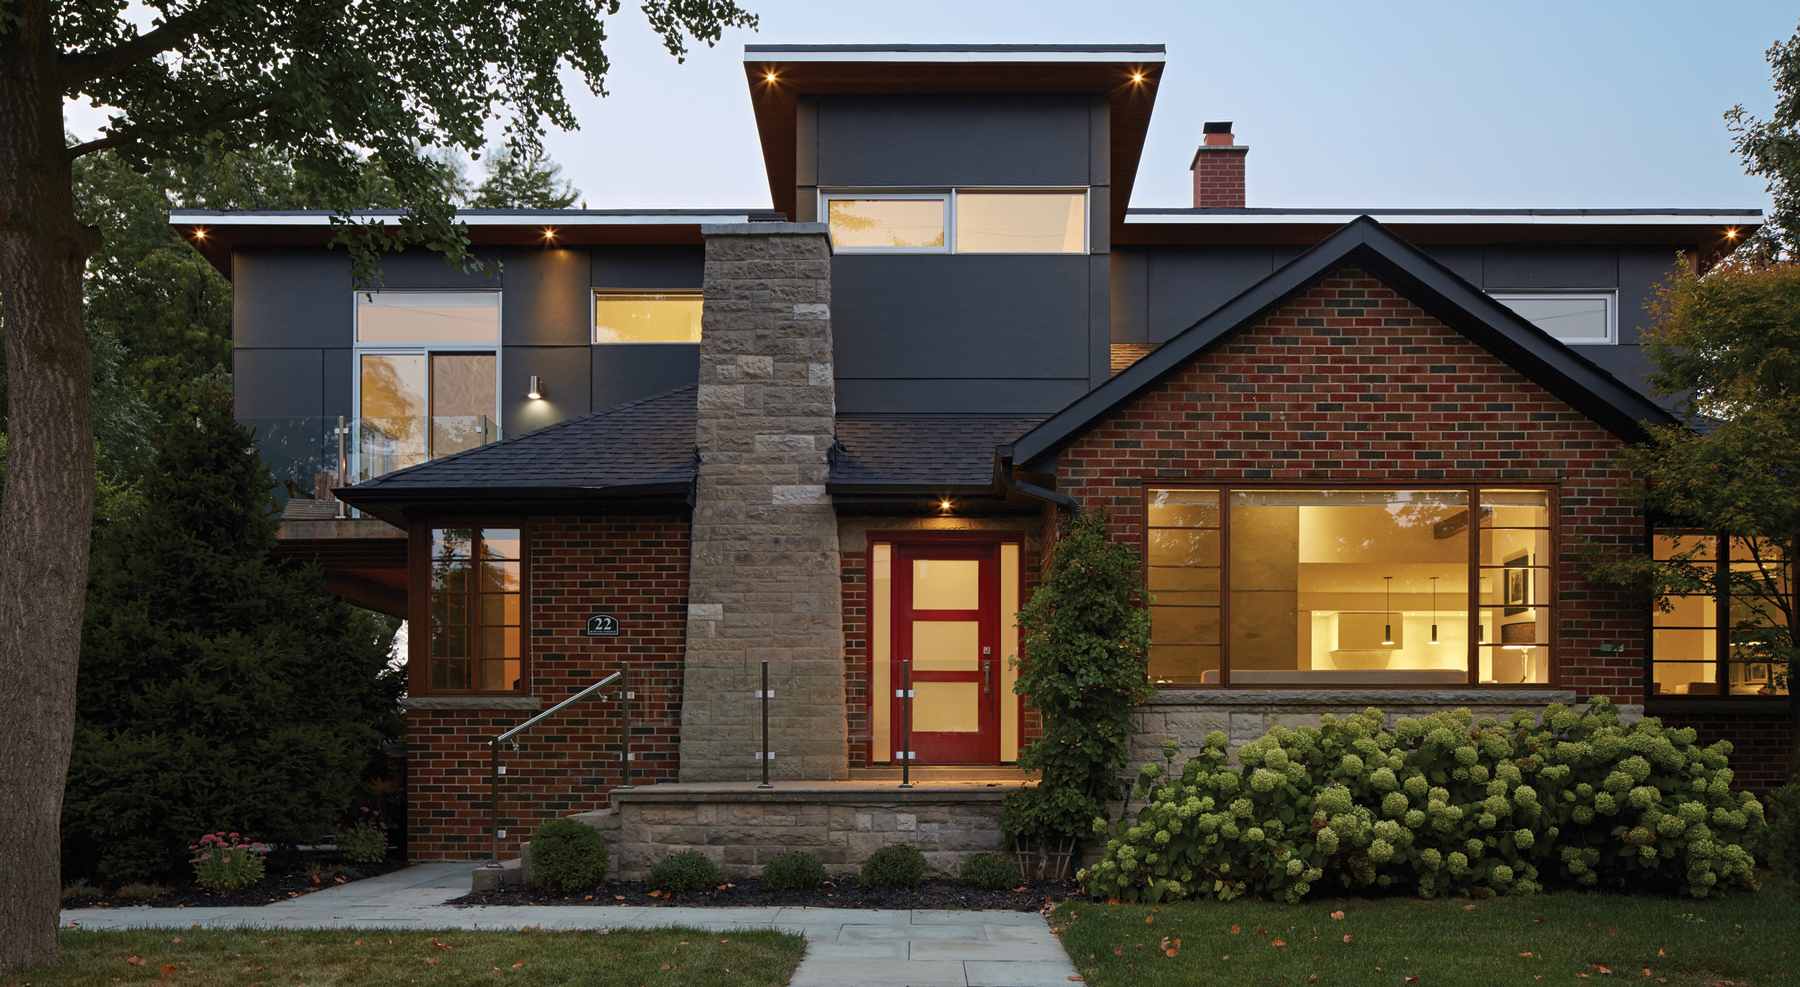 Illuminated original red brick house with second storey addition in the back and landscaped front yard at dusk